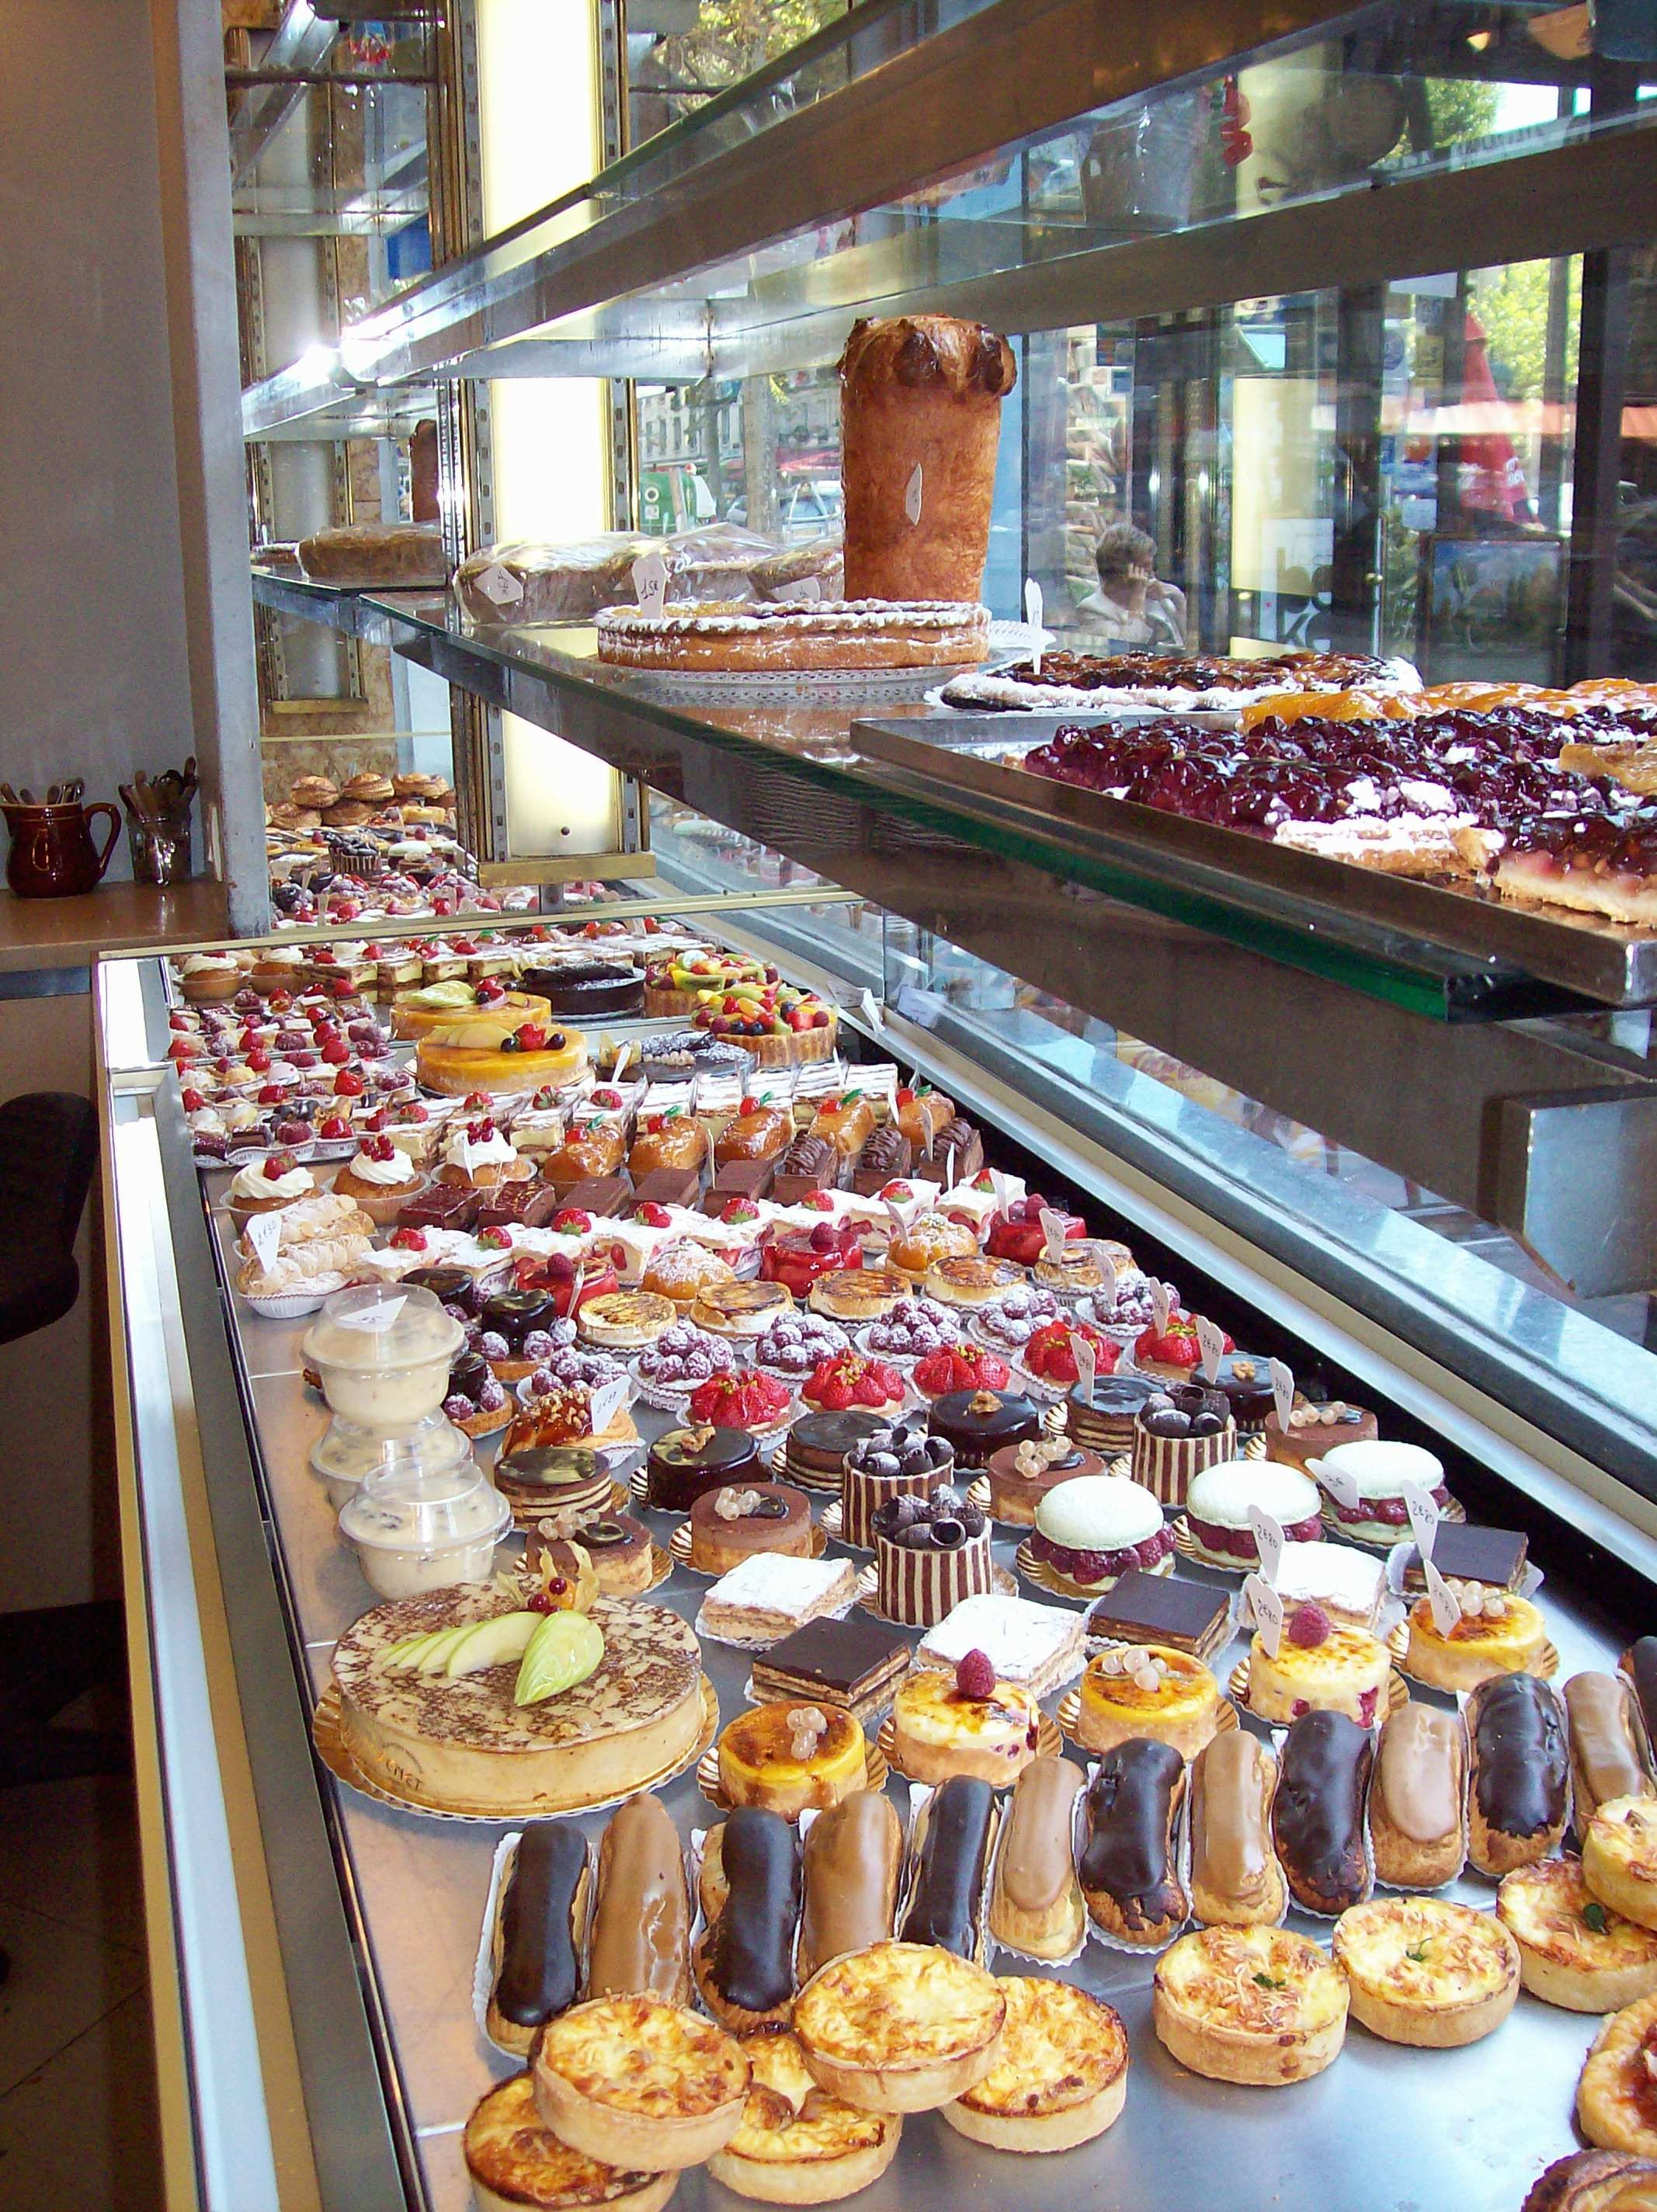 Paris Pastry Shop Coffee Shop Bakery Design Pastry Shop Pekarni Vkusnyashki Pitanie Recepty